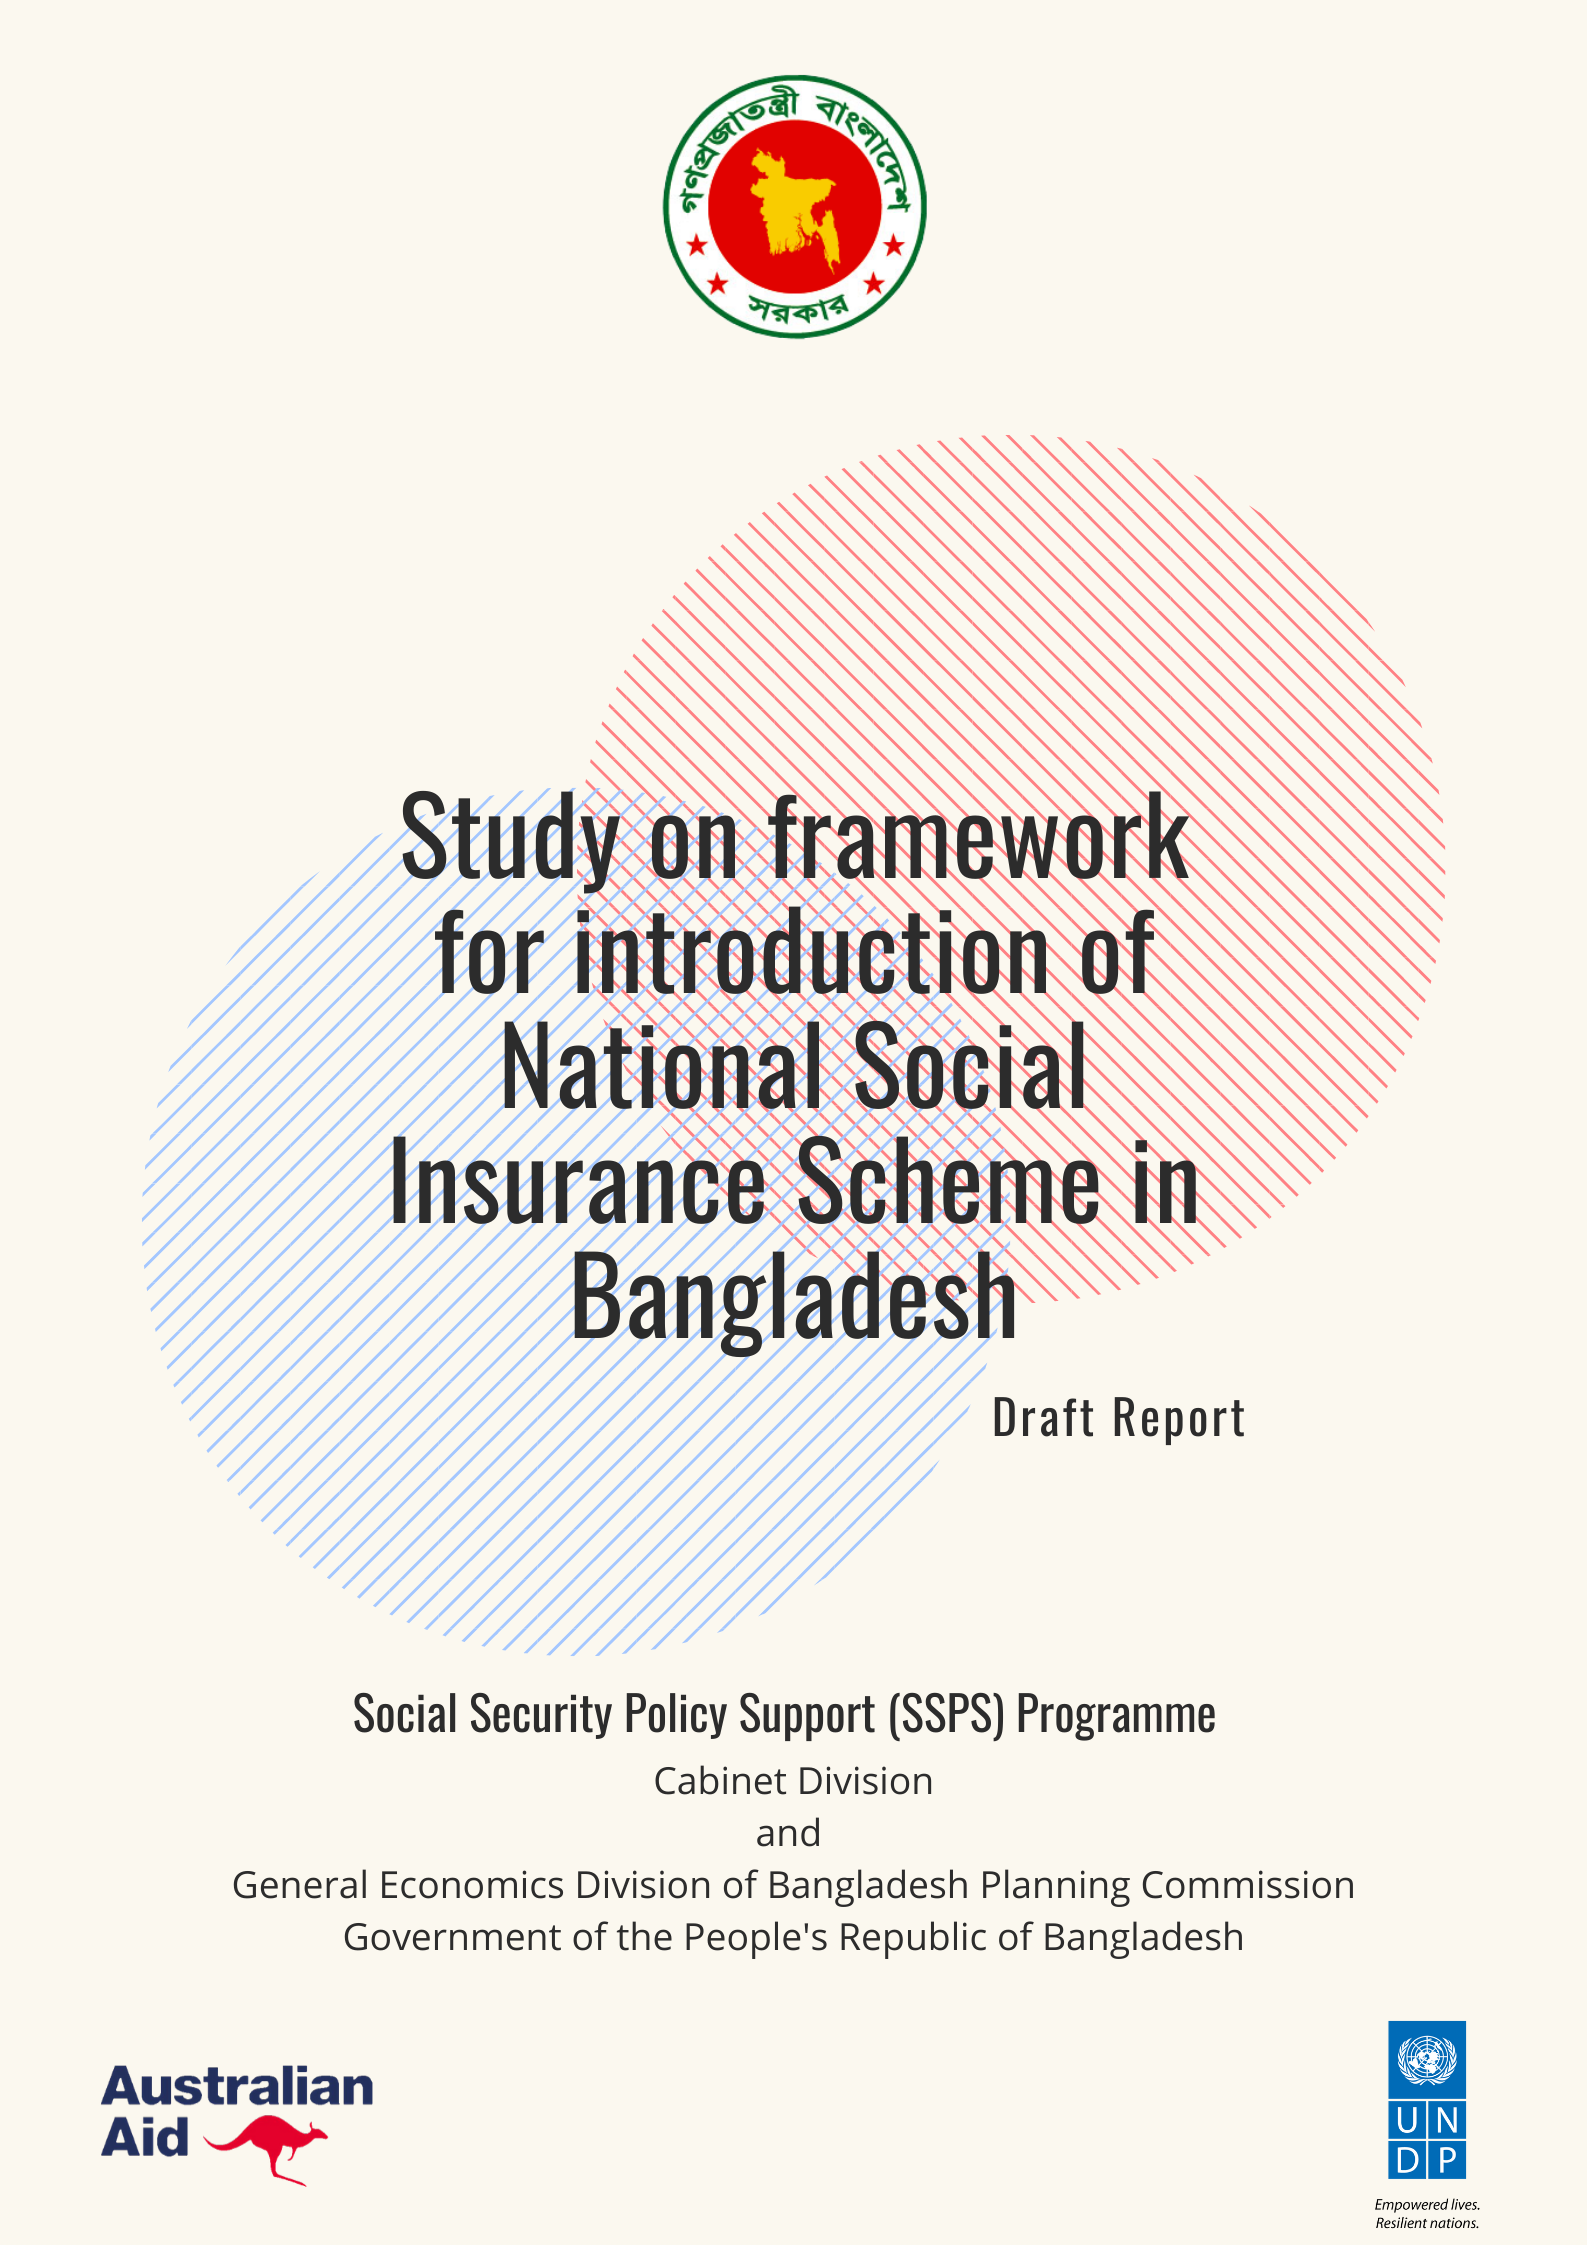 Study on Framework for Introduction of National Social Insurance Scheme in Bangladesh - Draft Report